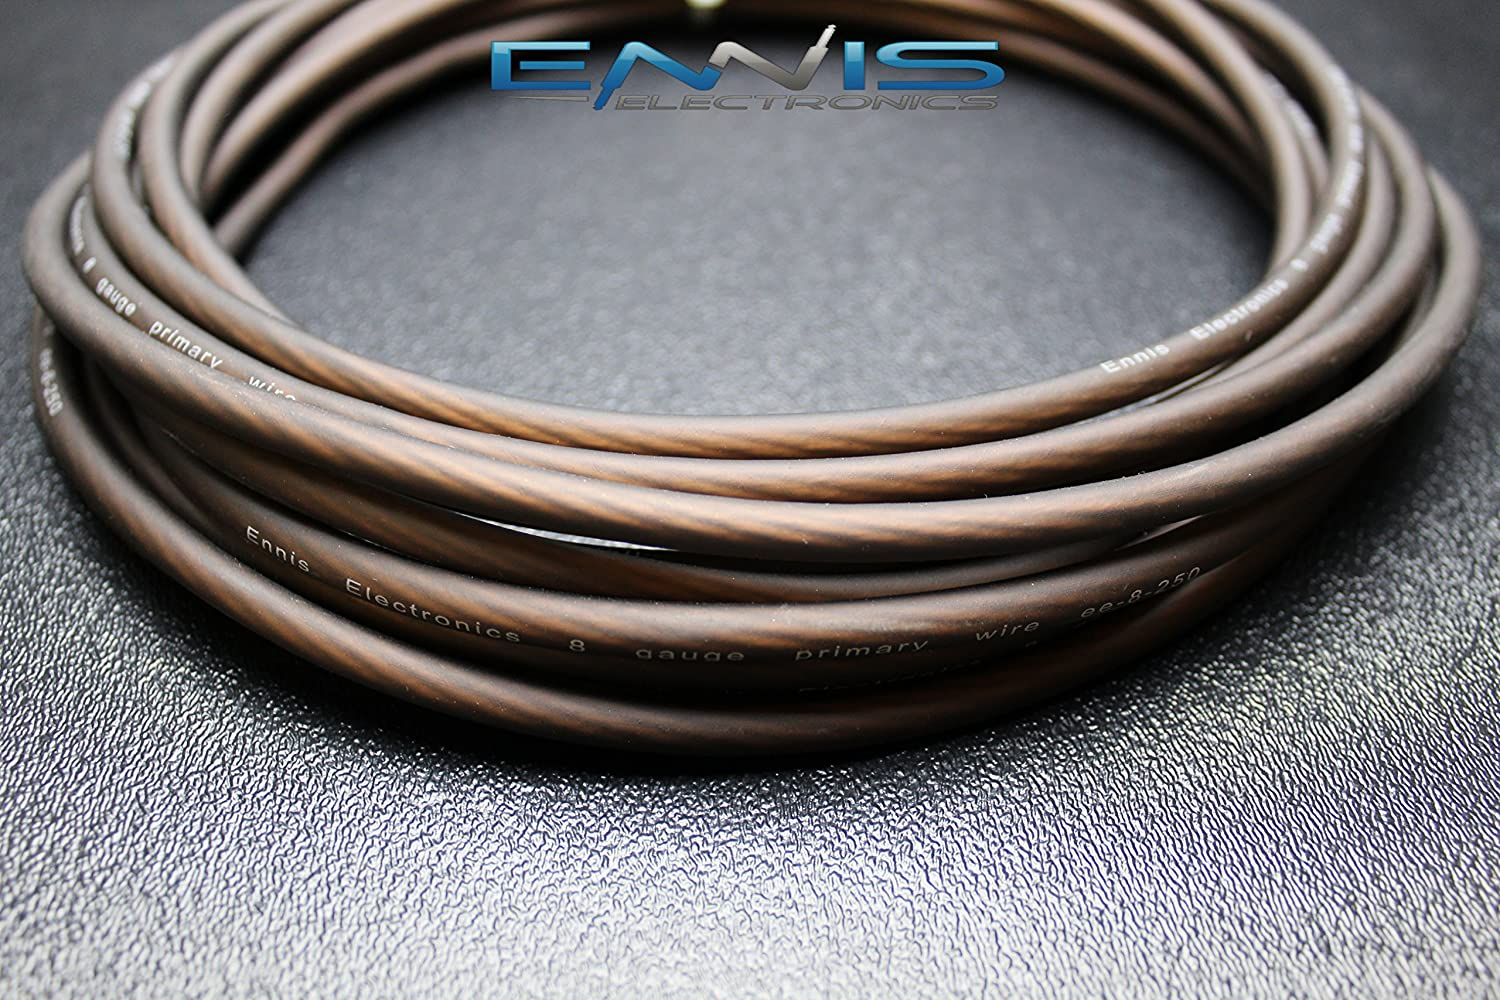 8 GAUGE WIRE 100 FT TOTAL 50 FT BLACK 50 FT RED SUPER FLEX AWG CABLE BY ENNIS ELECTRONICS POWER GROUND STRANDED CAR SOLAR AUTOMOTIVE